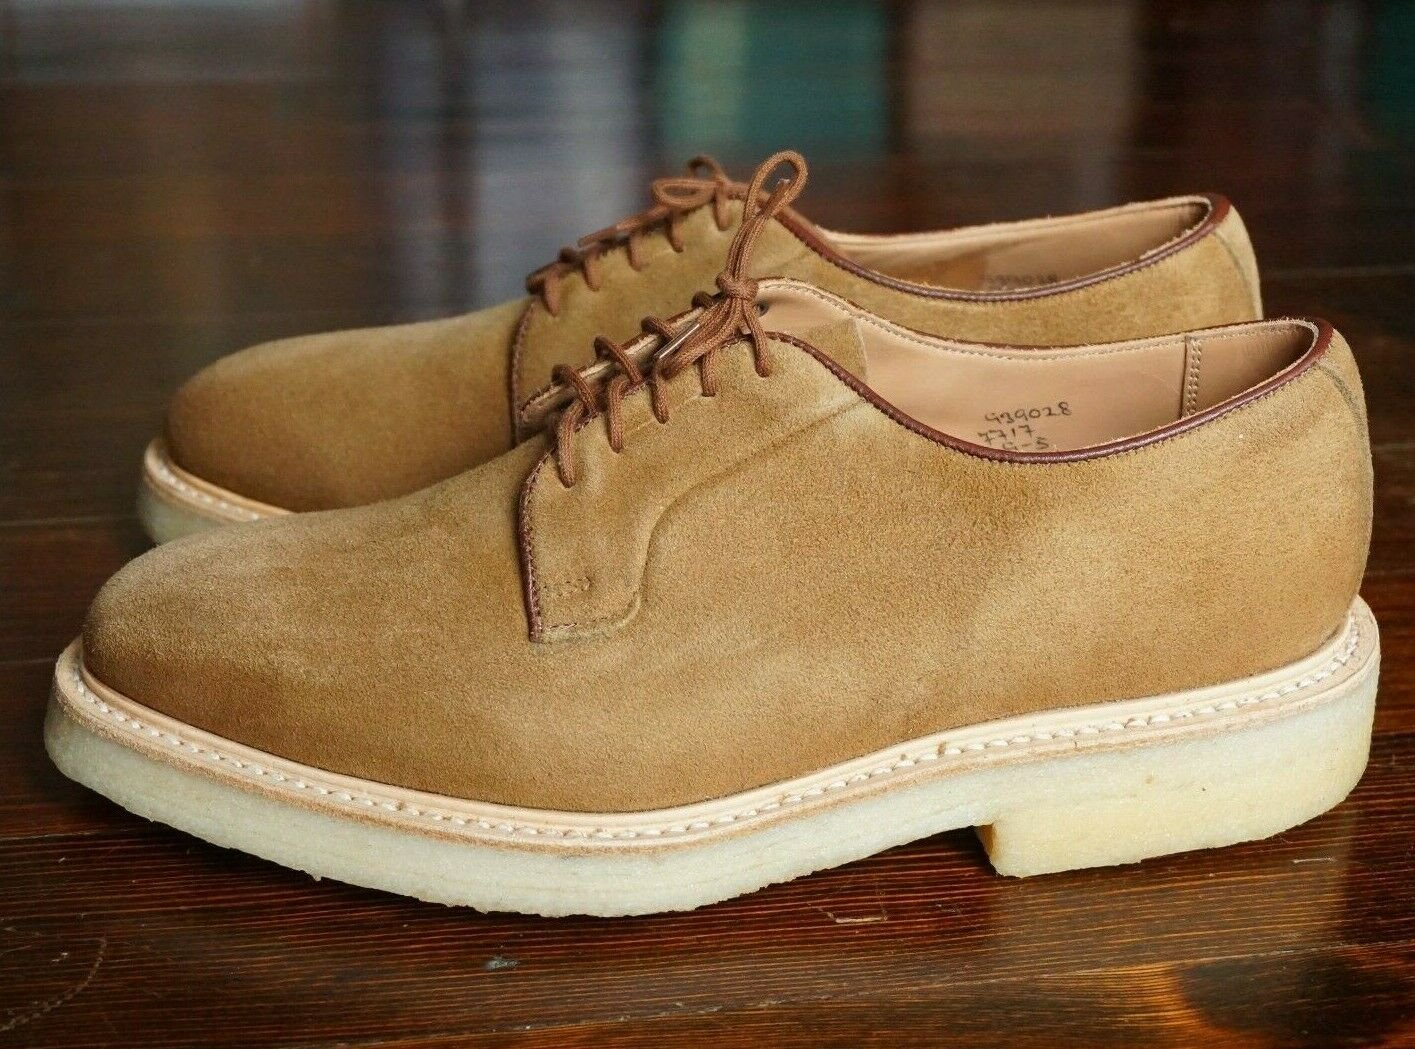 NEW WITH BOX   TRICKERS UK 9 US 10 ROBERT PLAIN TOE DERBY TAN KUDU SUEDE 81 LAST